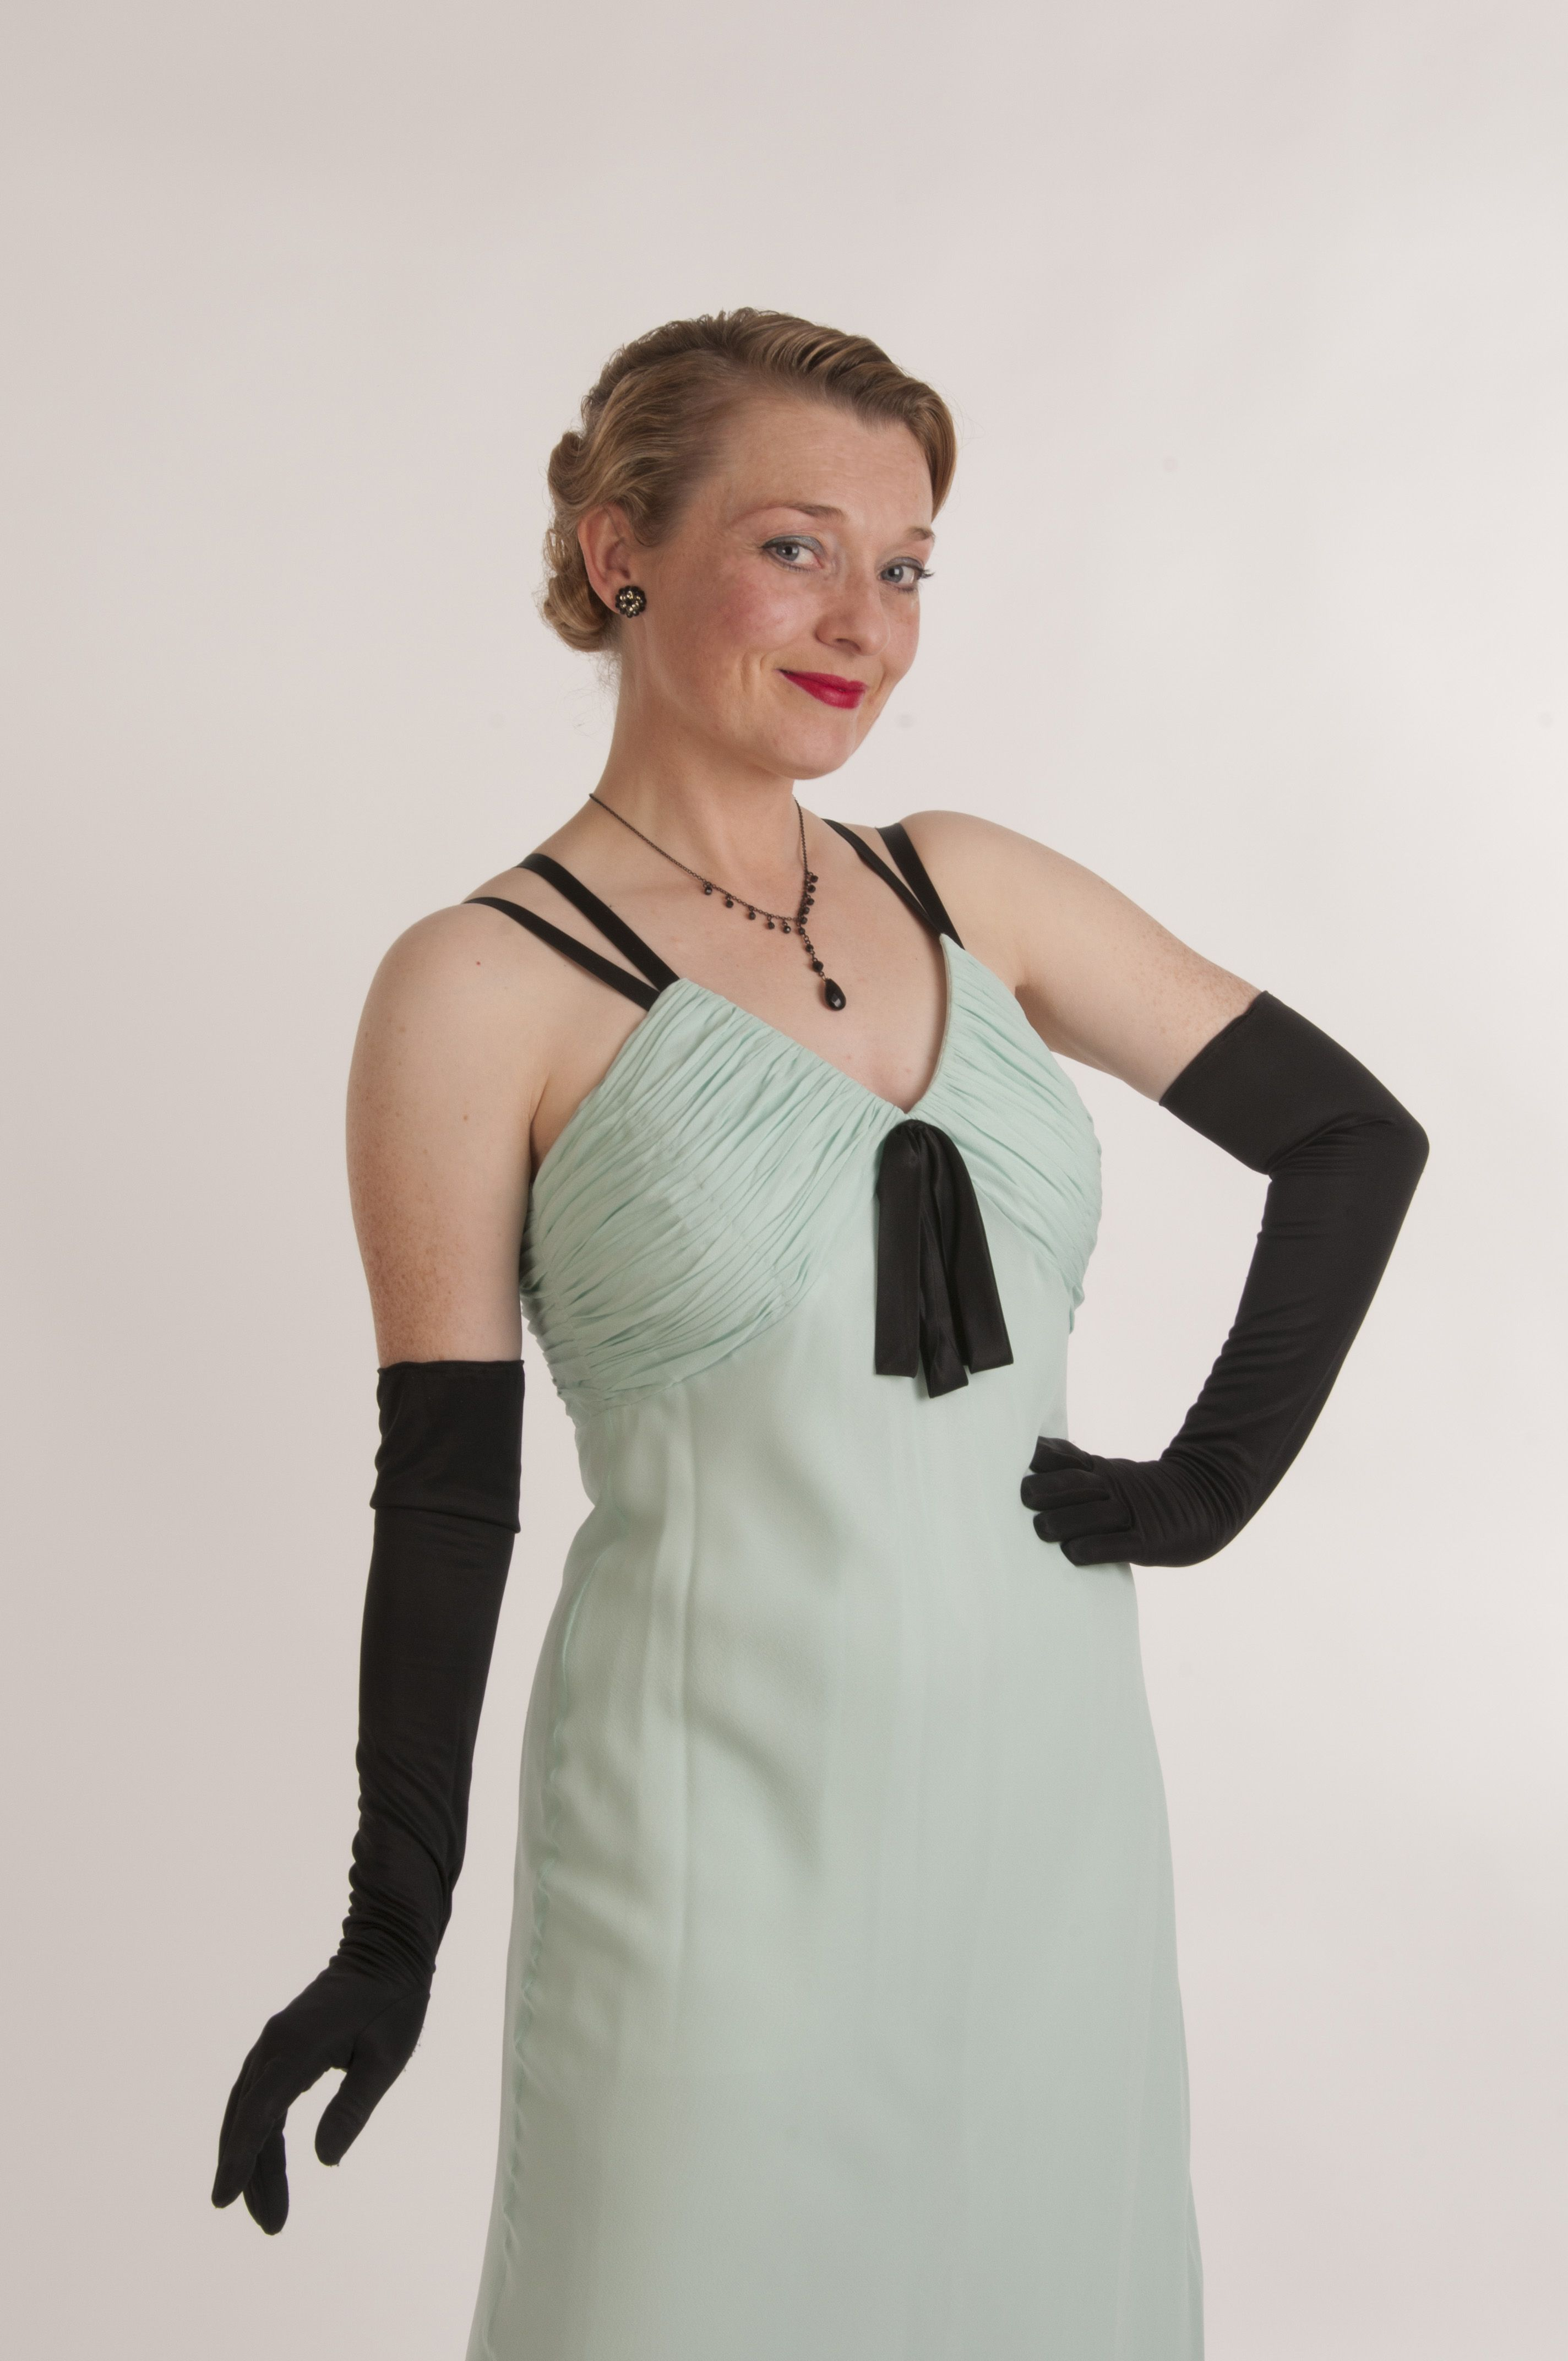 Black gloves evening wear - Fiona Harrison In A Mint Green Evening Gown And Black Gloves